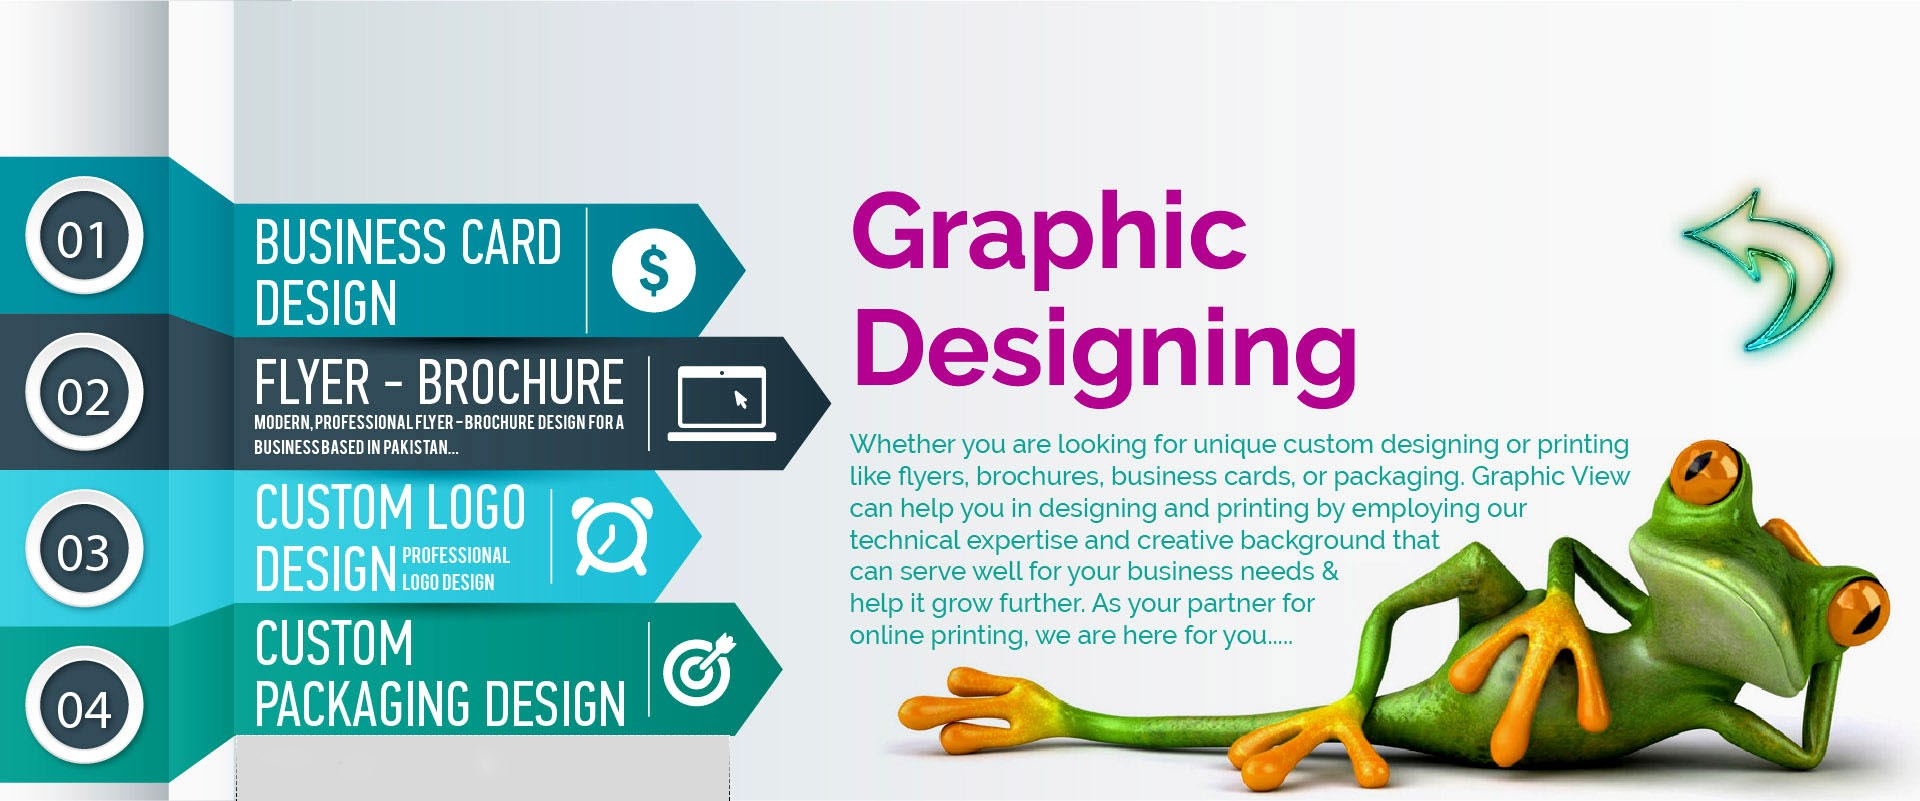 Graphic designer, know how much they make in a year